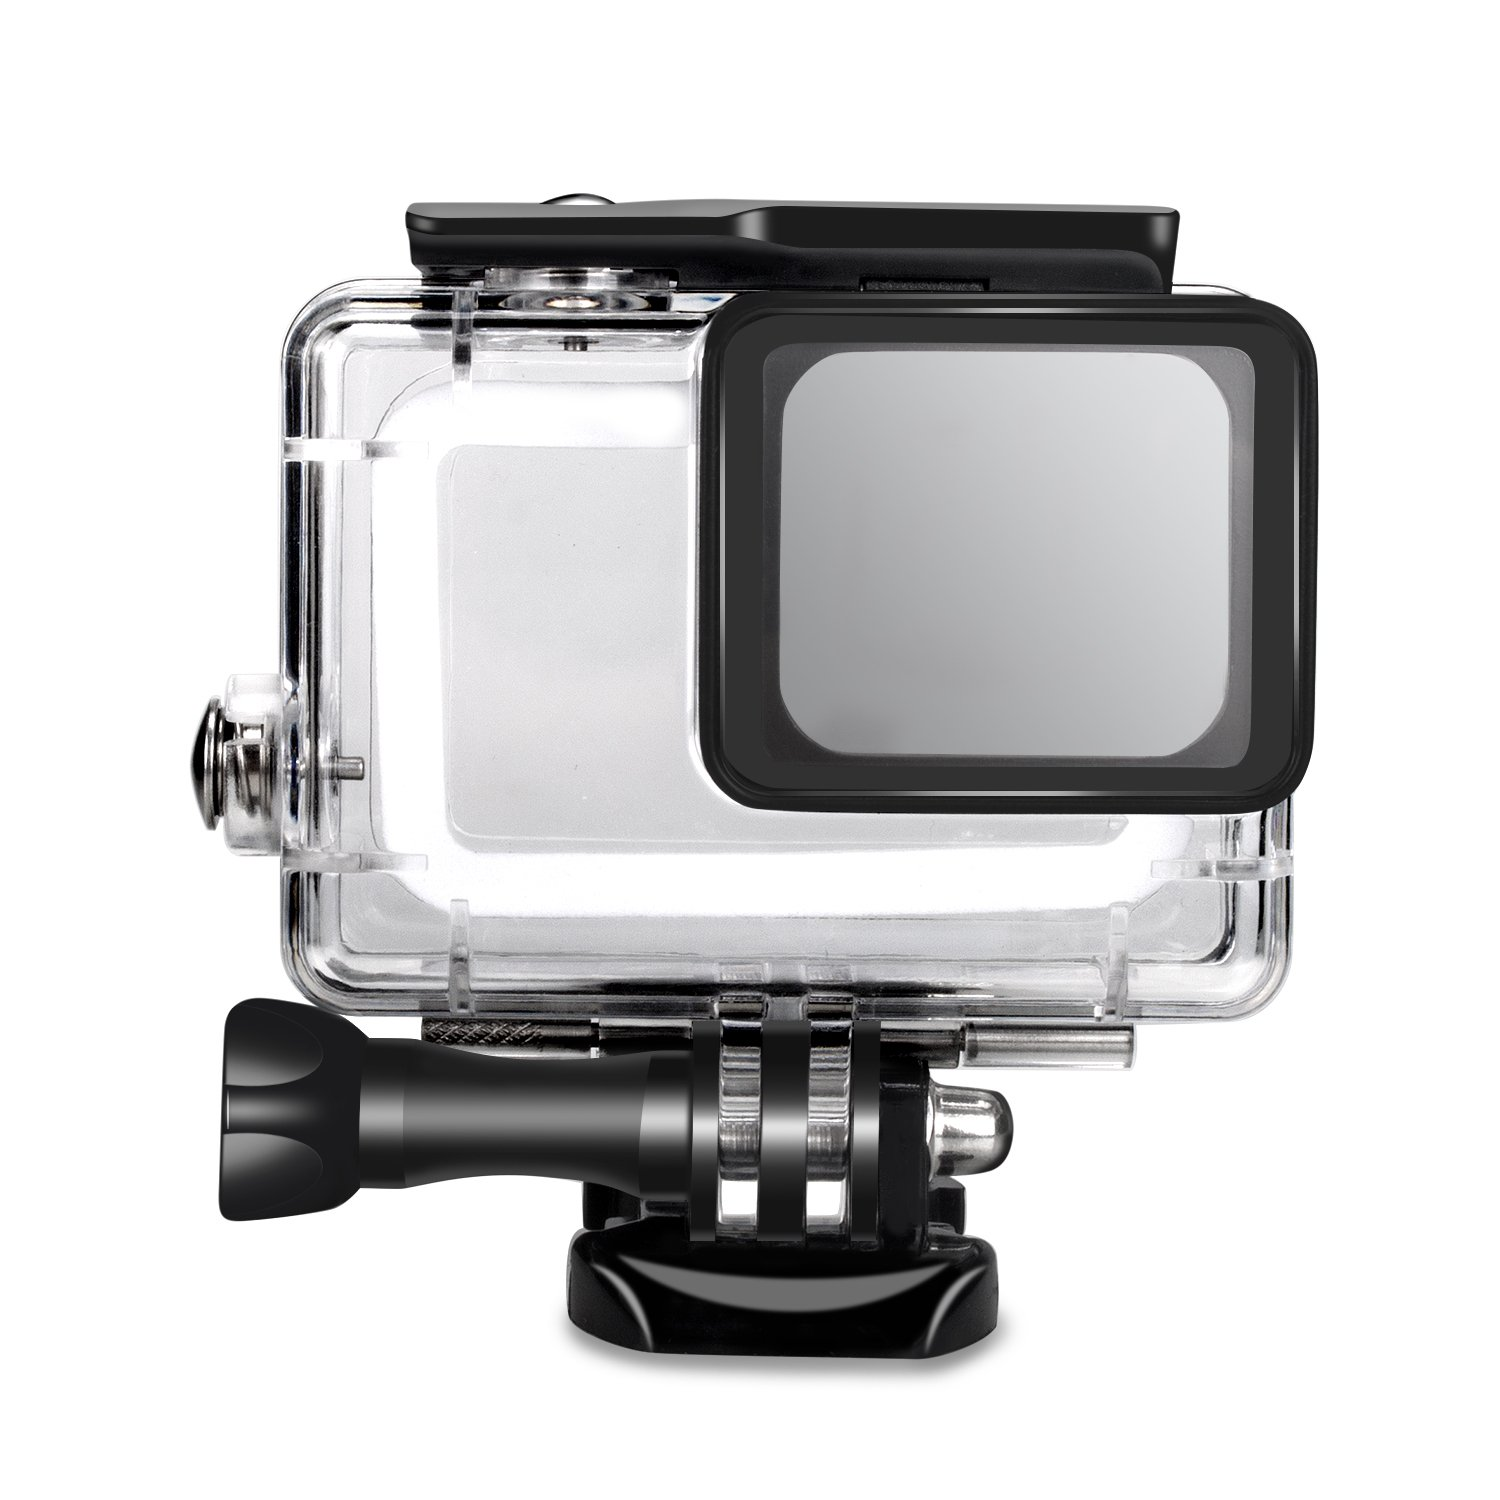 SyndeRay Waterproof Housing Case Cover for GoPro HERO(2018)/6/5-Underwater 45 Meters by SyndeRay